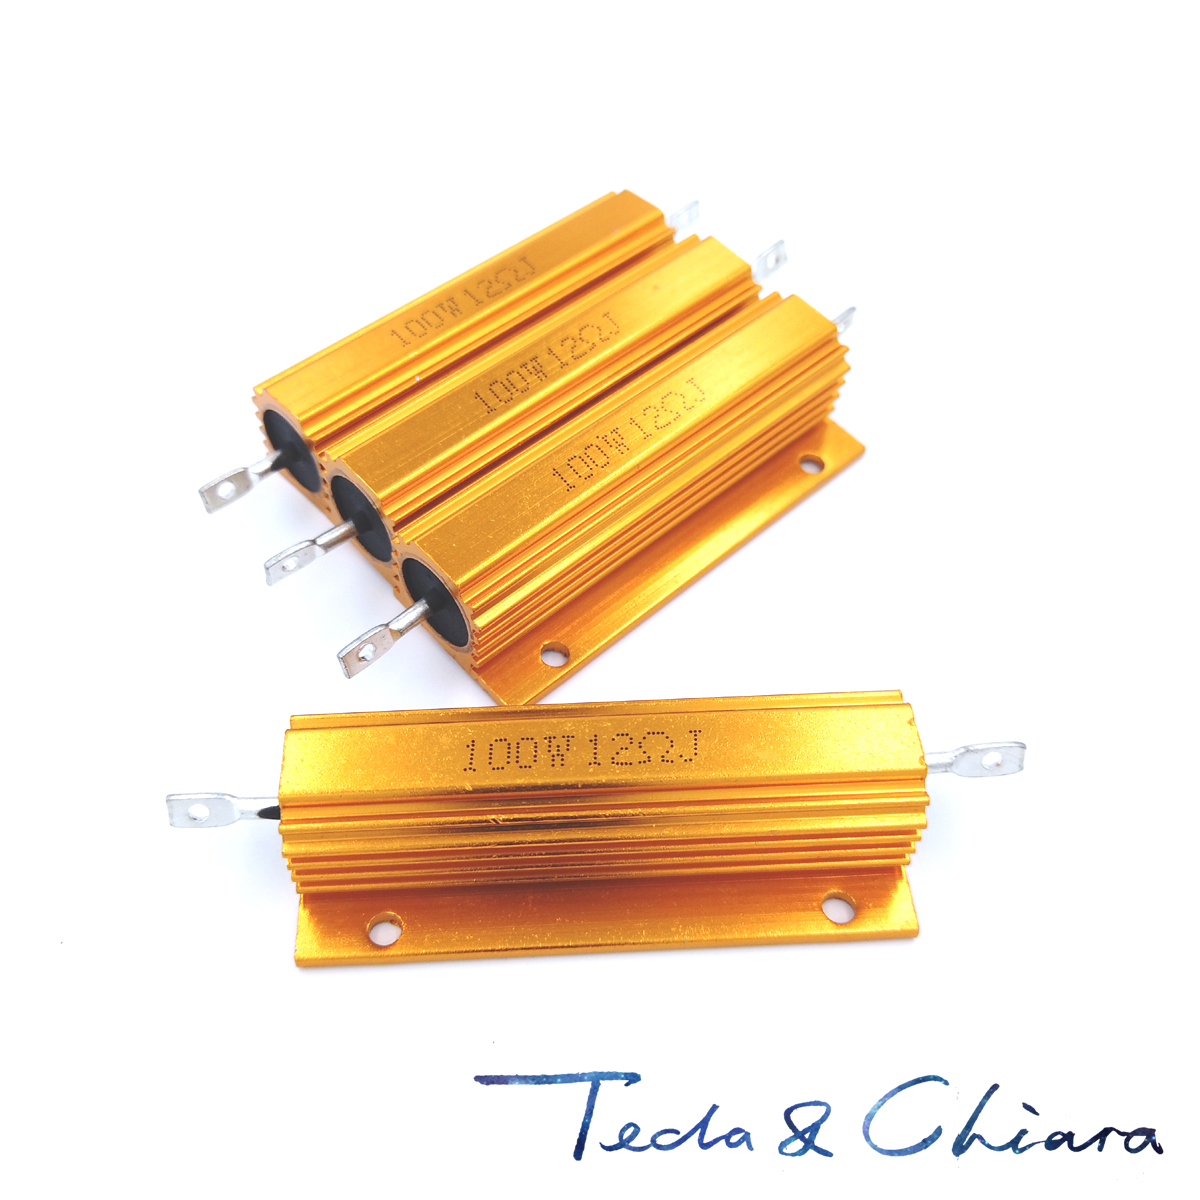 2Pcs 18R 18ohm 18 47R 47ohm 47 R Ohm <font><b>100W</b></font> Watt Aluminum Wirewound Power Metal Shell Case <font><b>Resistor</b></font> Resistance RX24 image